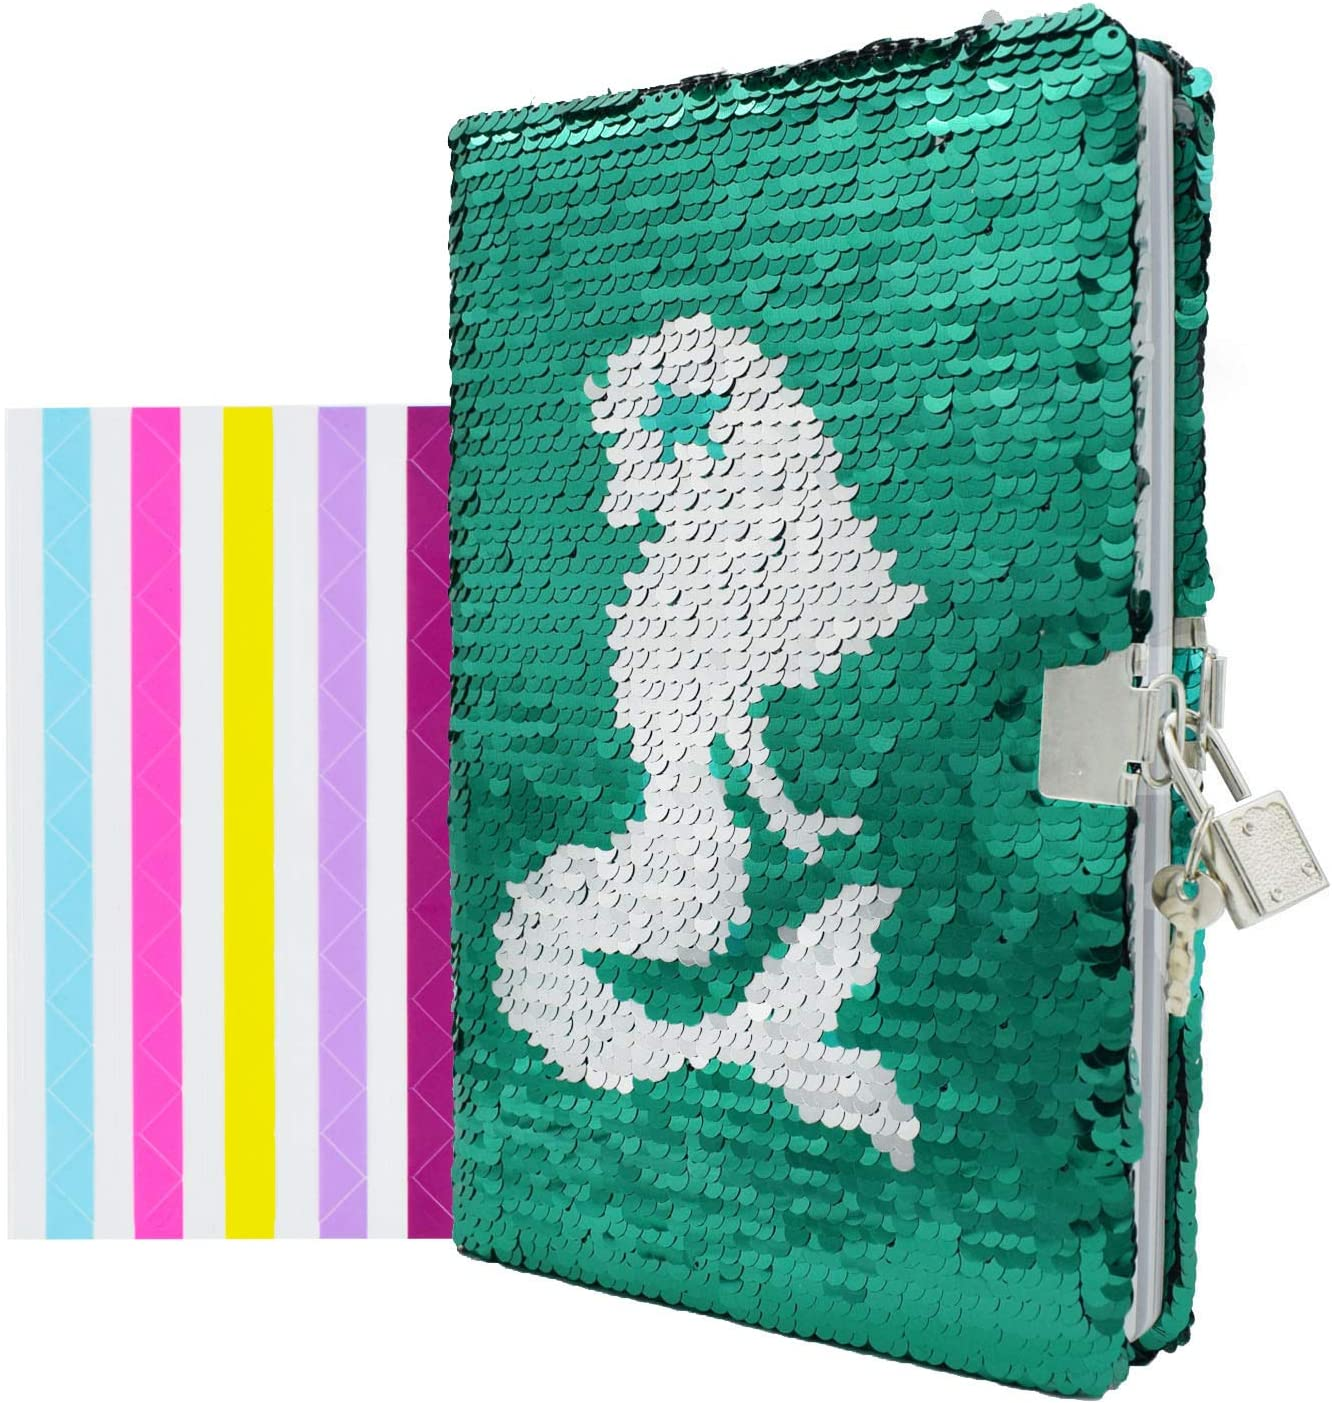 MHJY Unicorn Notebook Sequin Secret Diary with Lock,Reversible Mermaid A5 Notepa